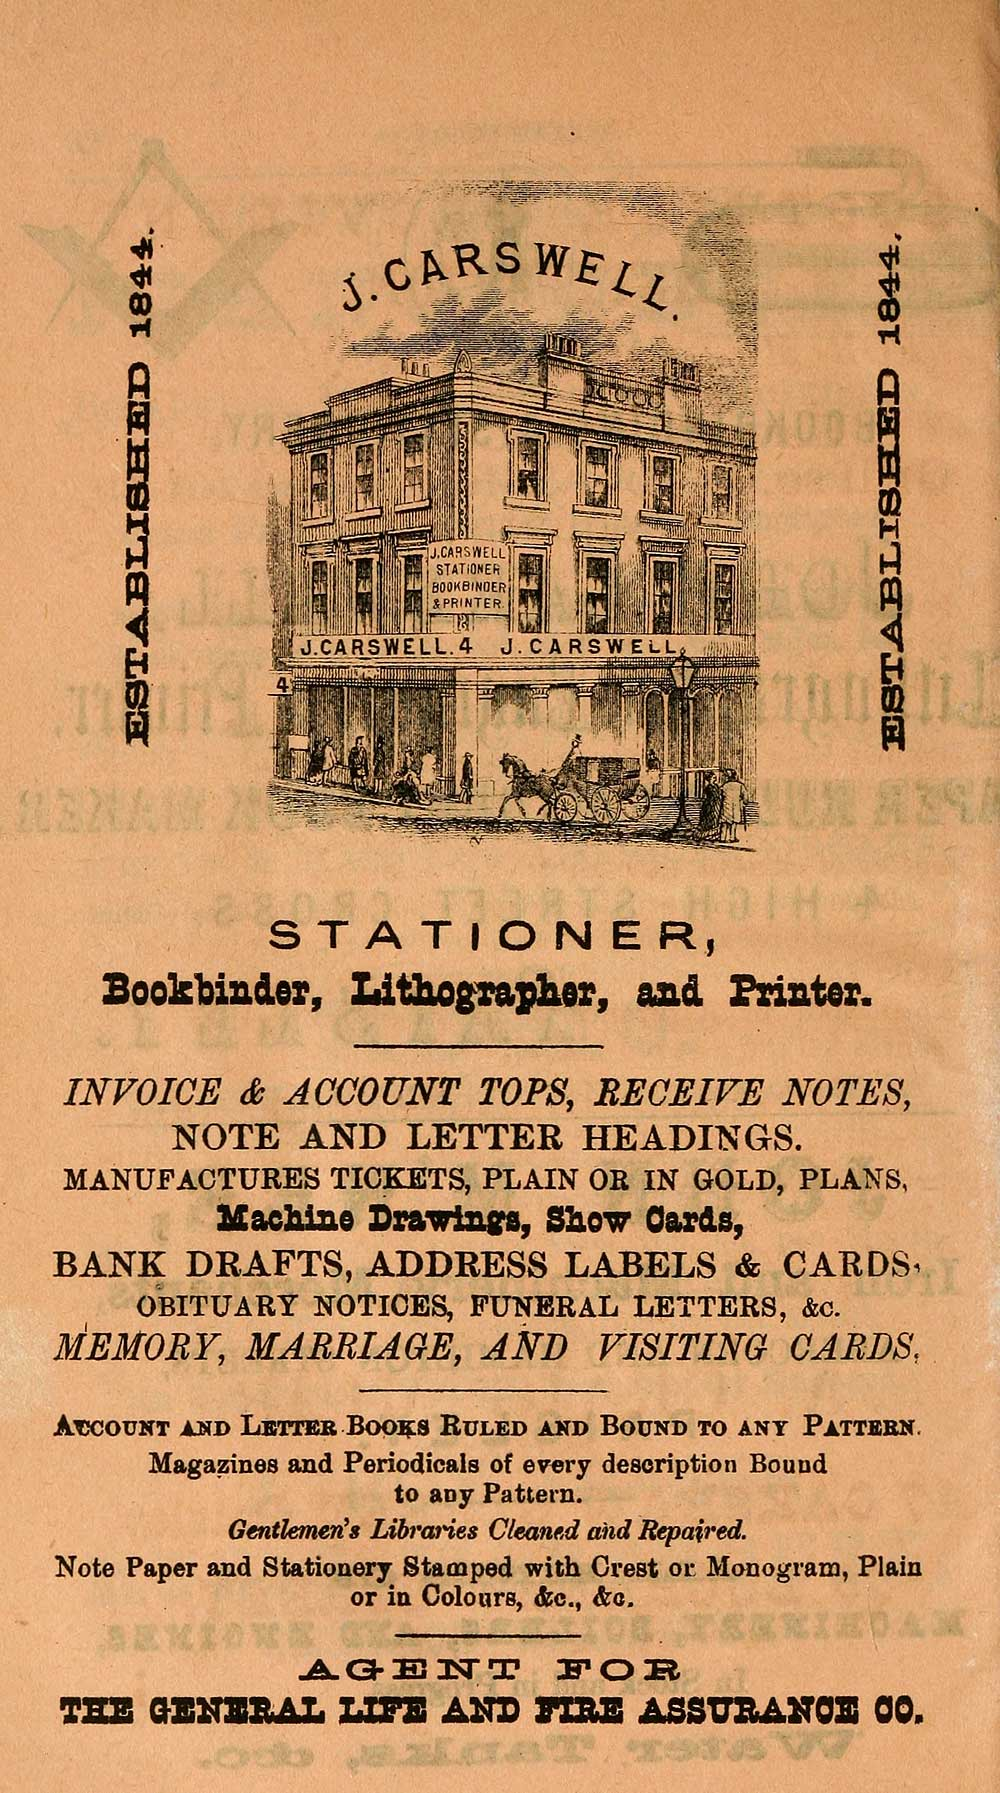 356) - Towns > Paisley > 1862-1884 - Watson's directory for Paisley